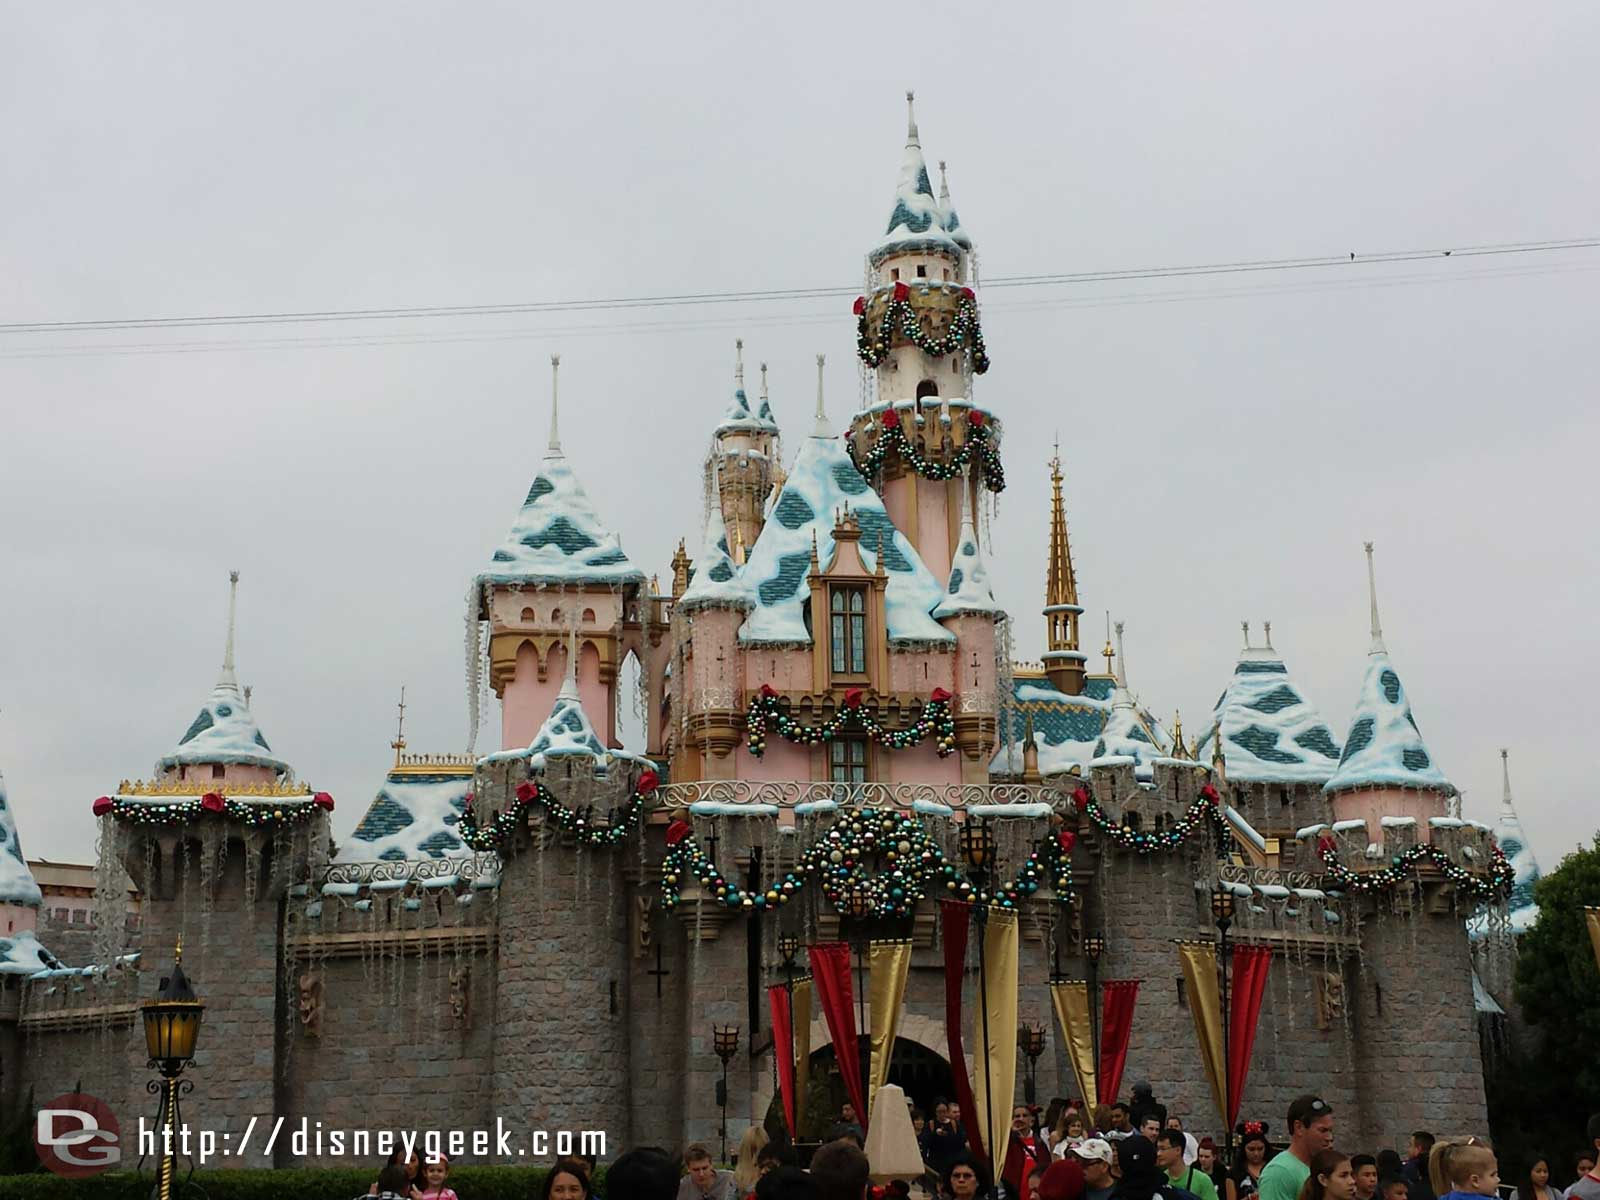 Sleeping Beauty Castle on this gray afternoon #Disneyland